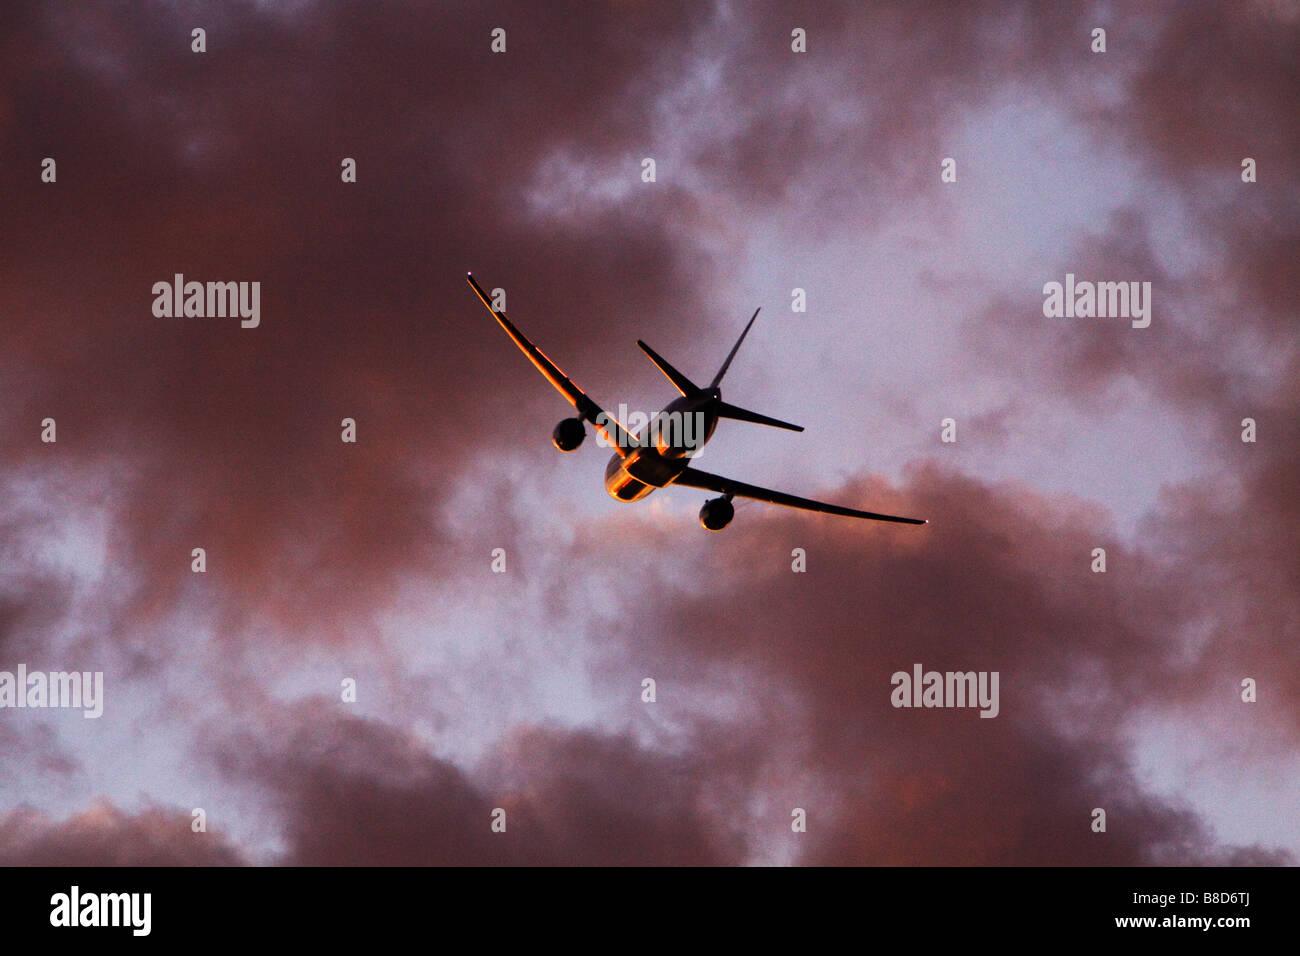 Jet Plane taking off into clouds at sunset with spectacular gold rim lighting. - Stock Image